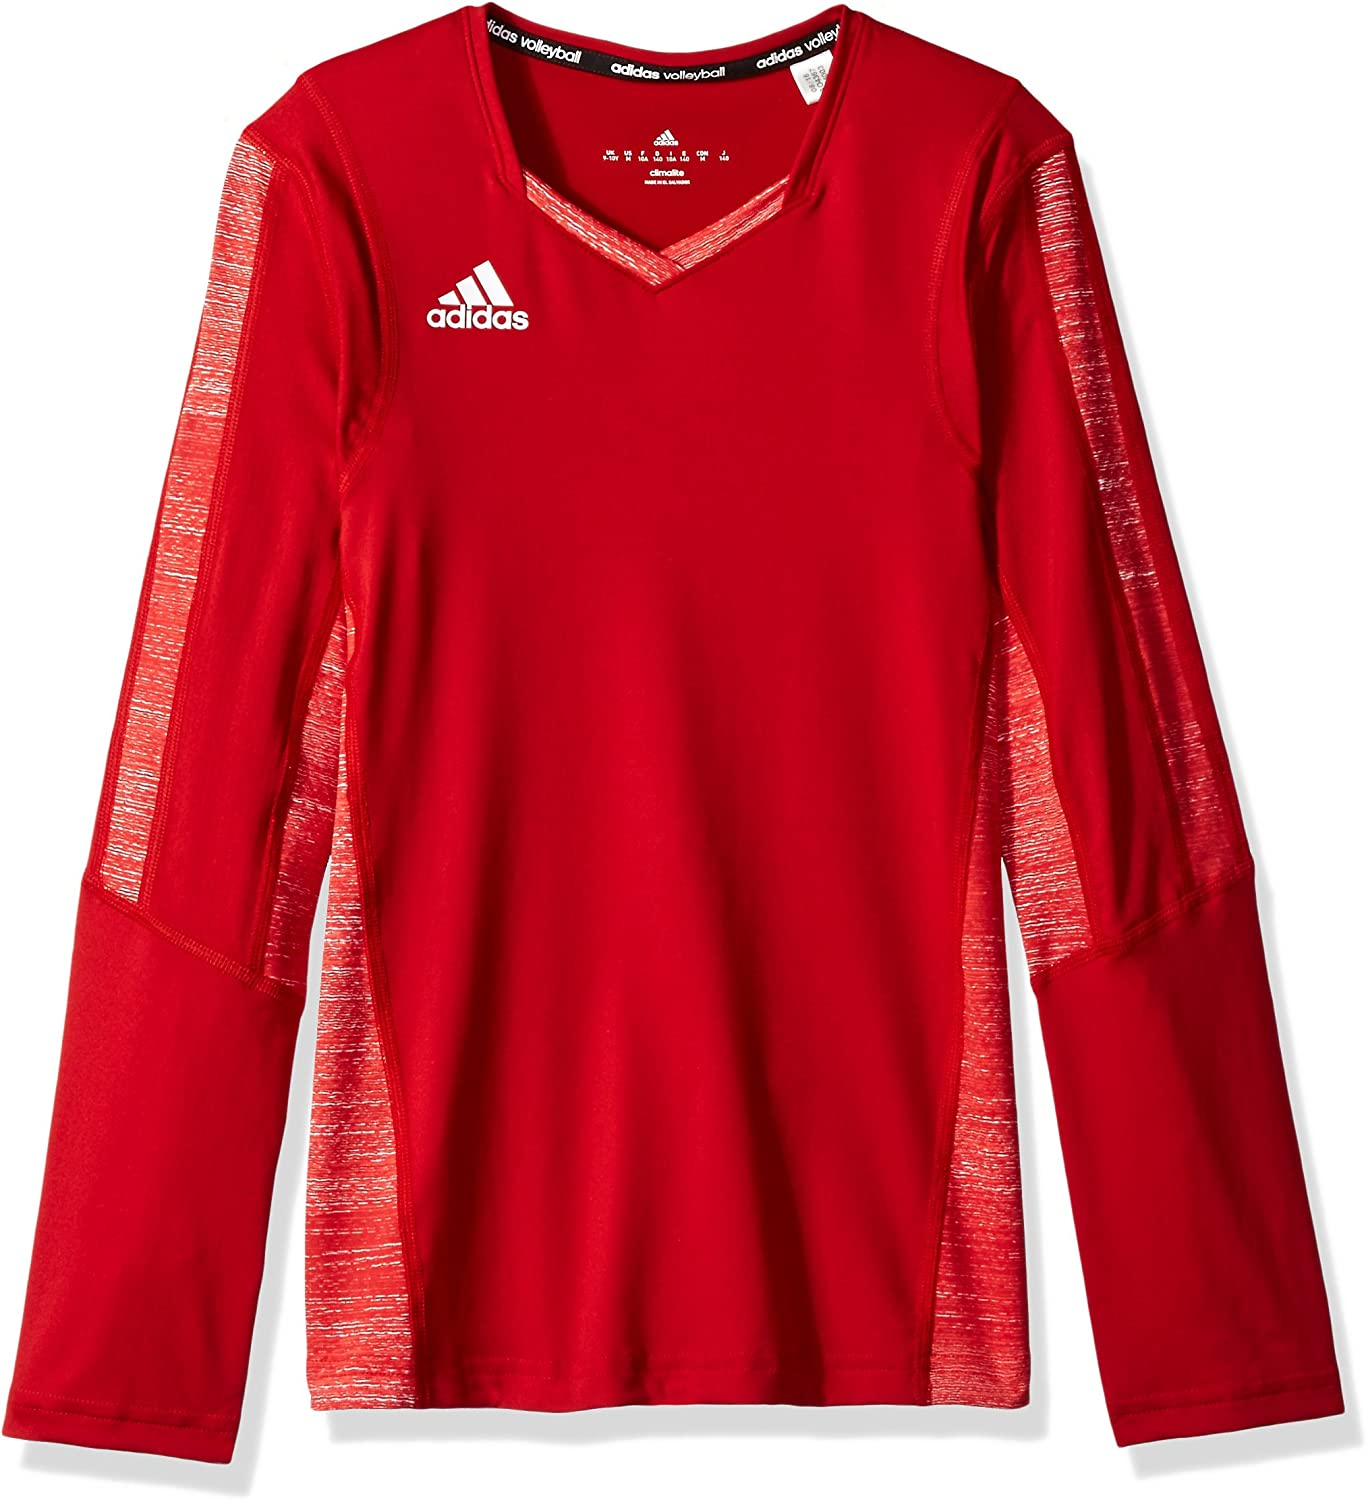 adidas Girl's Max 71% OFF Volleyball Quickset Long Jersey Max 60% OFF Sleeve